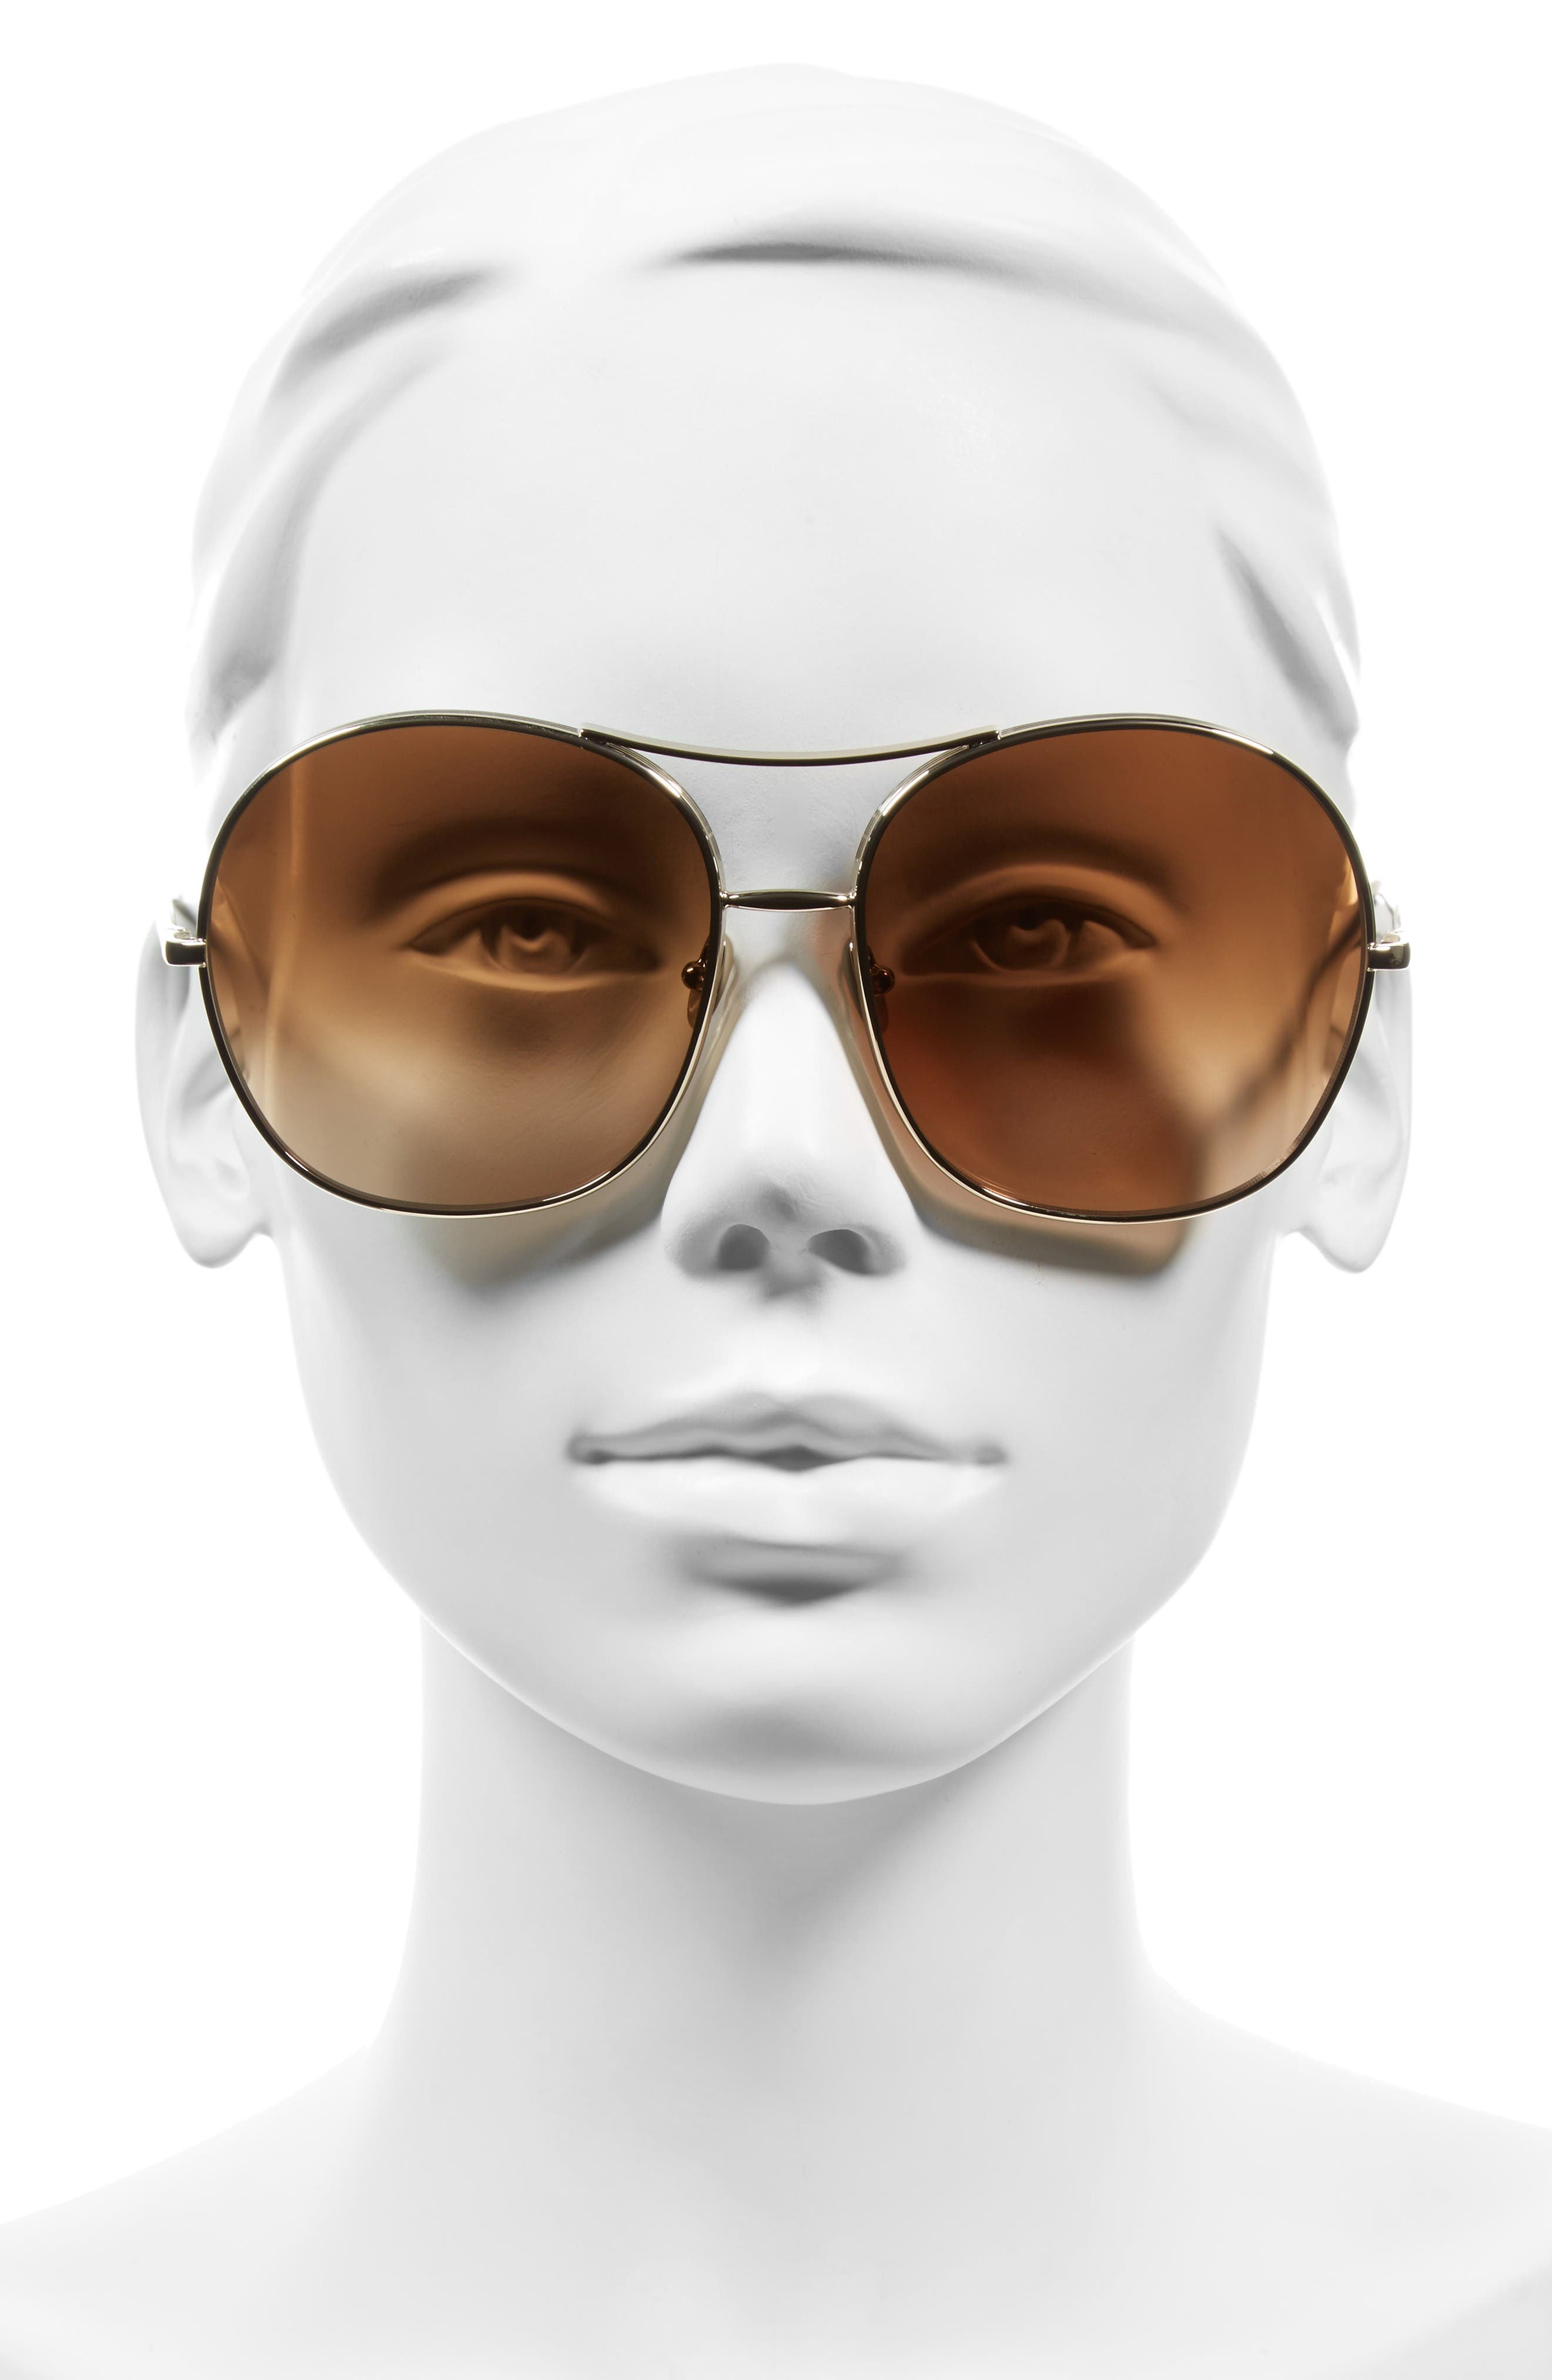 61mm Oversize Aviator Sunglasses,                             Alternate thumbnail 3, color,                             Gold/ Brown